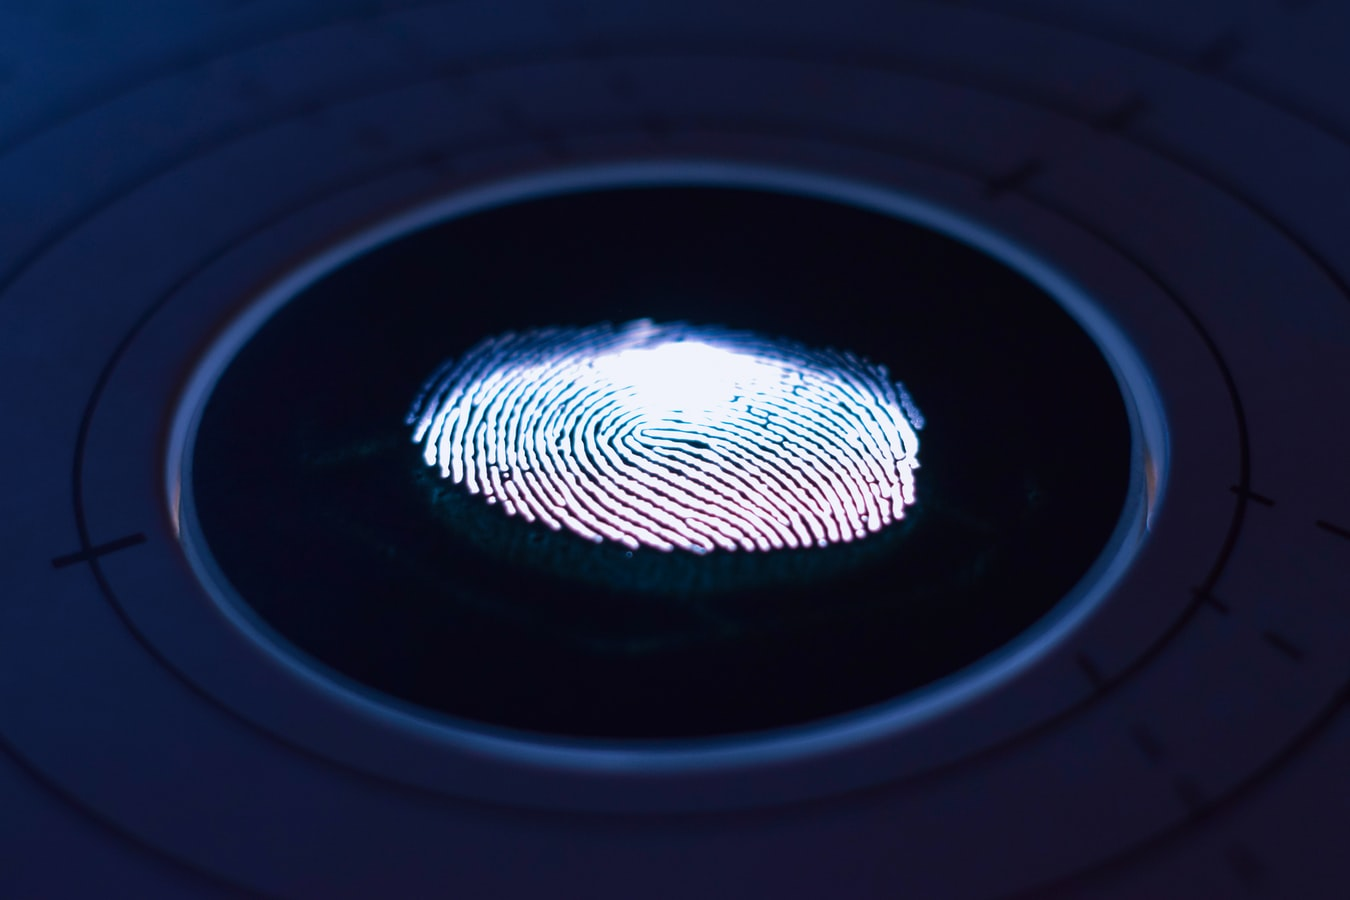 Illinois Biometric Information Privacy Act, It's Better Safe Than Sorry!